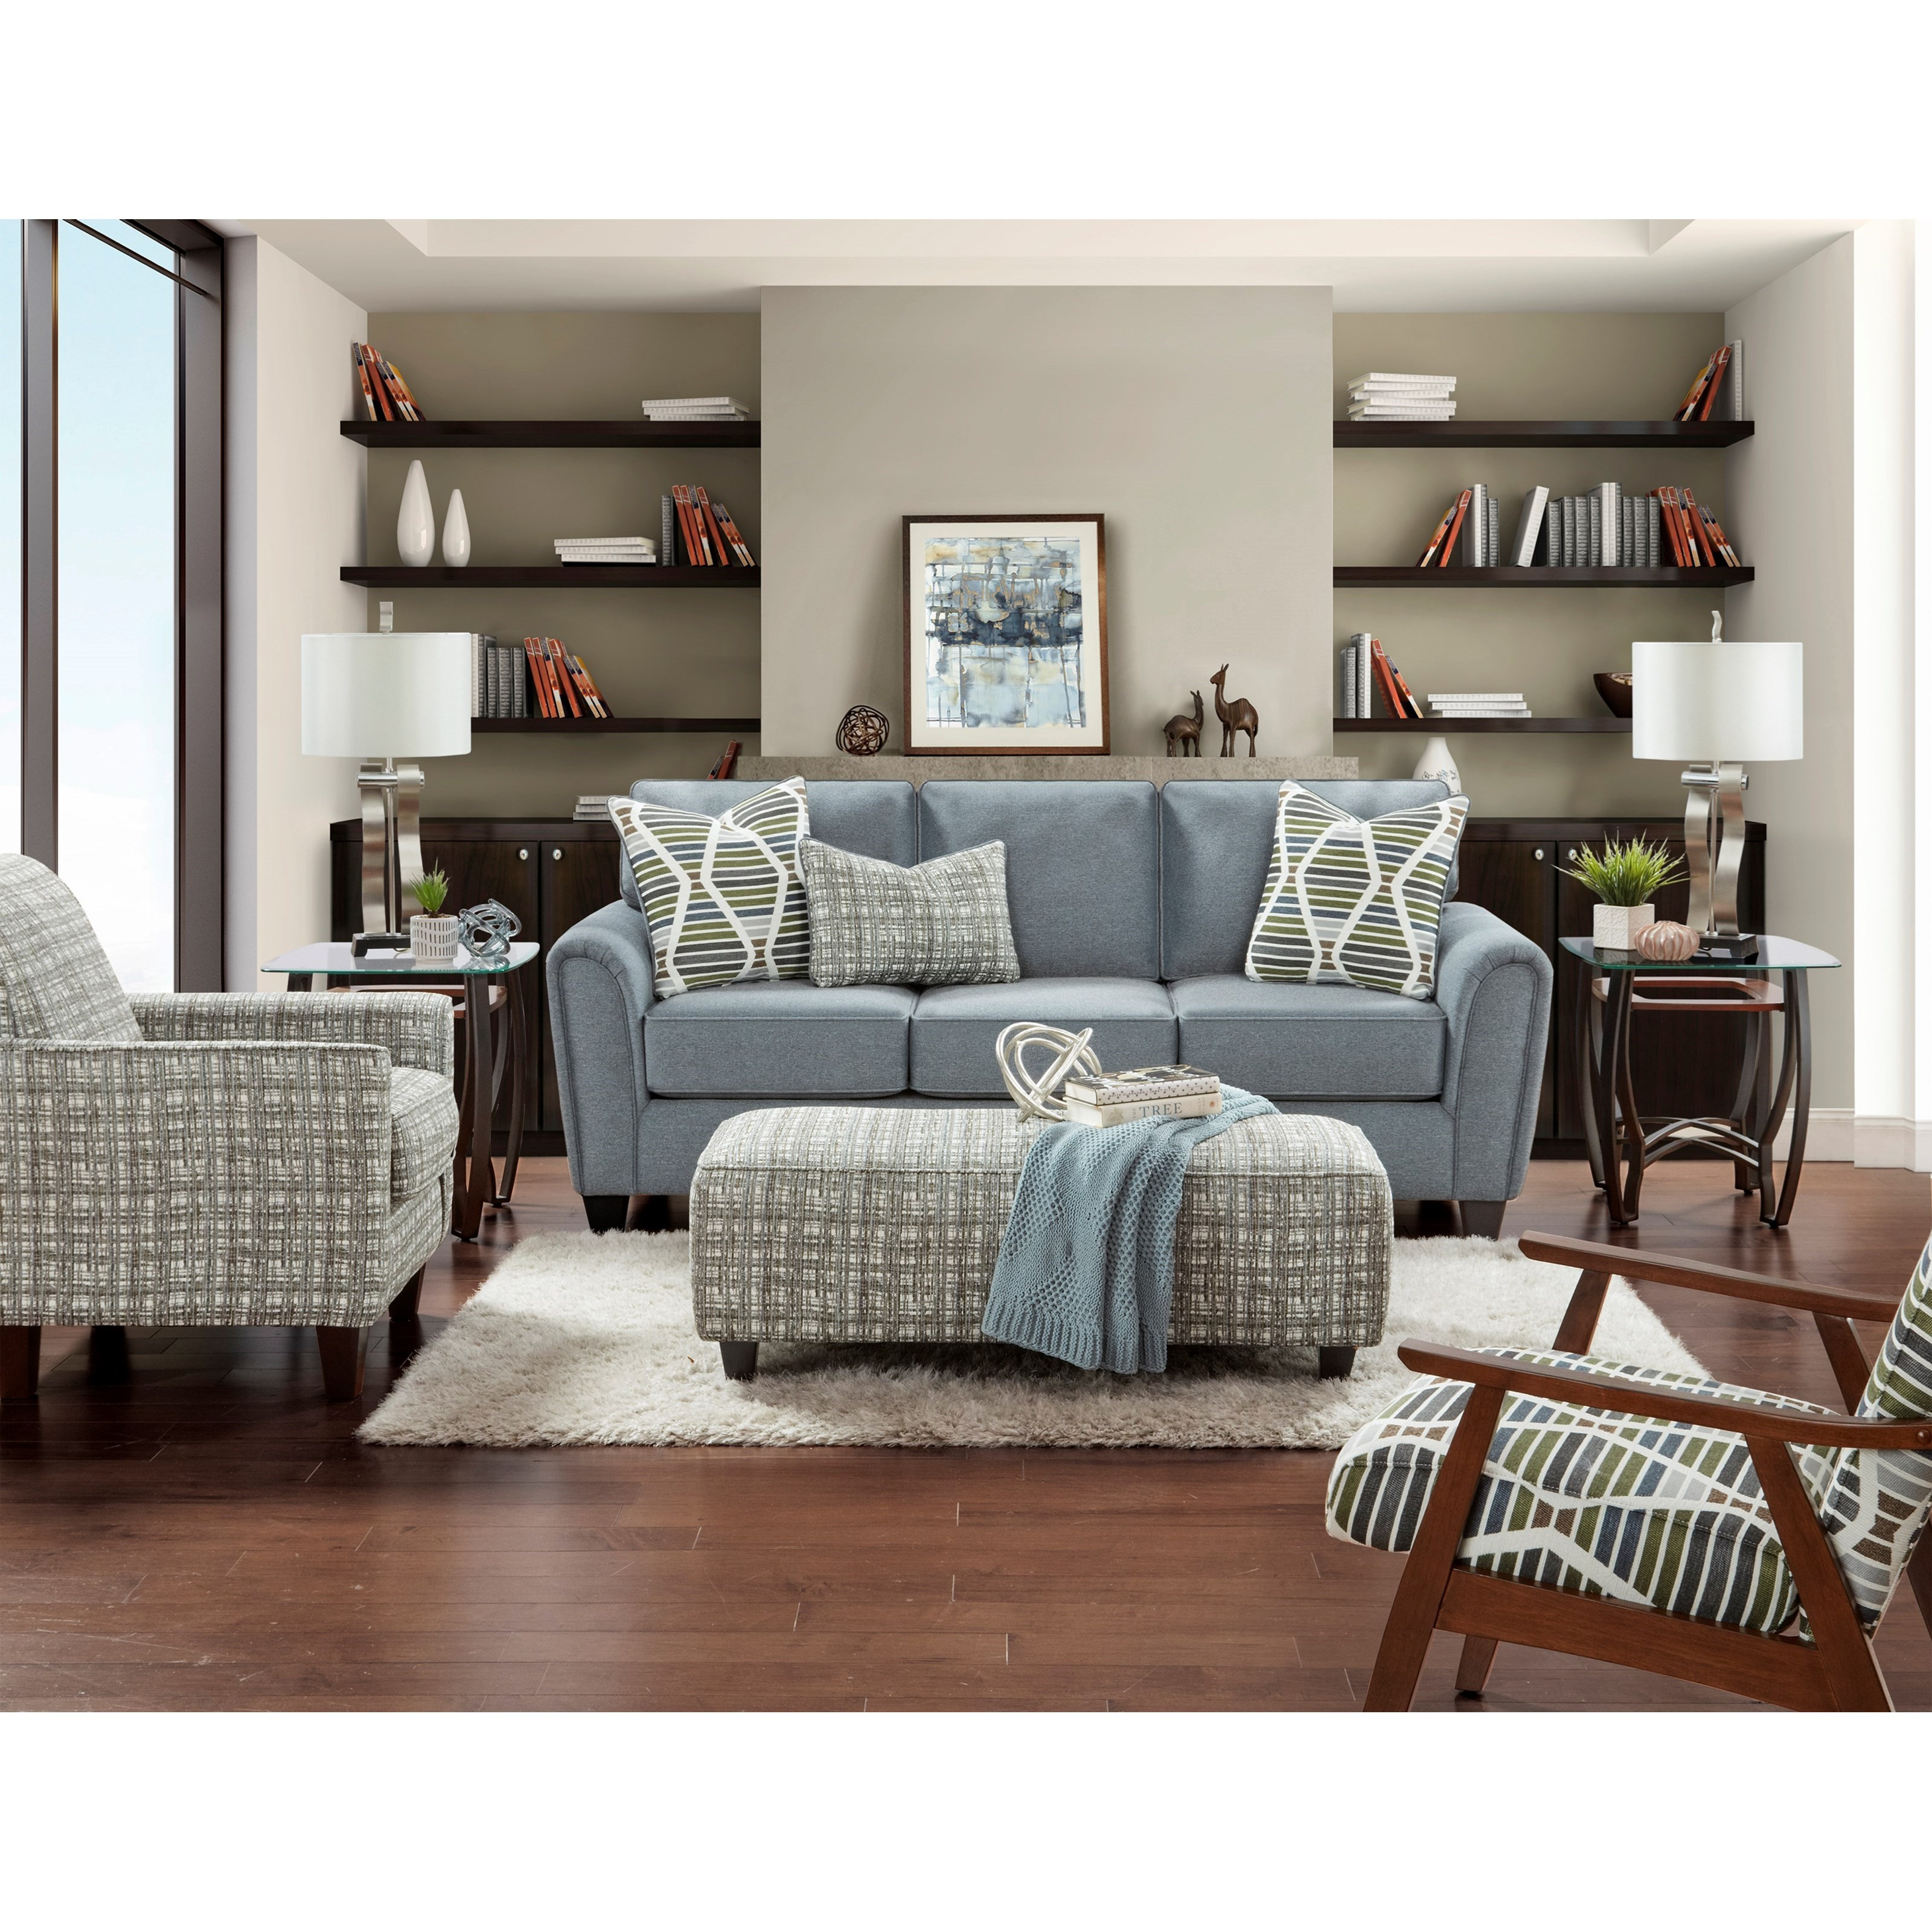 49-00 Living Room Group by FN at Lindy's Furniture Company